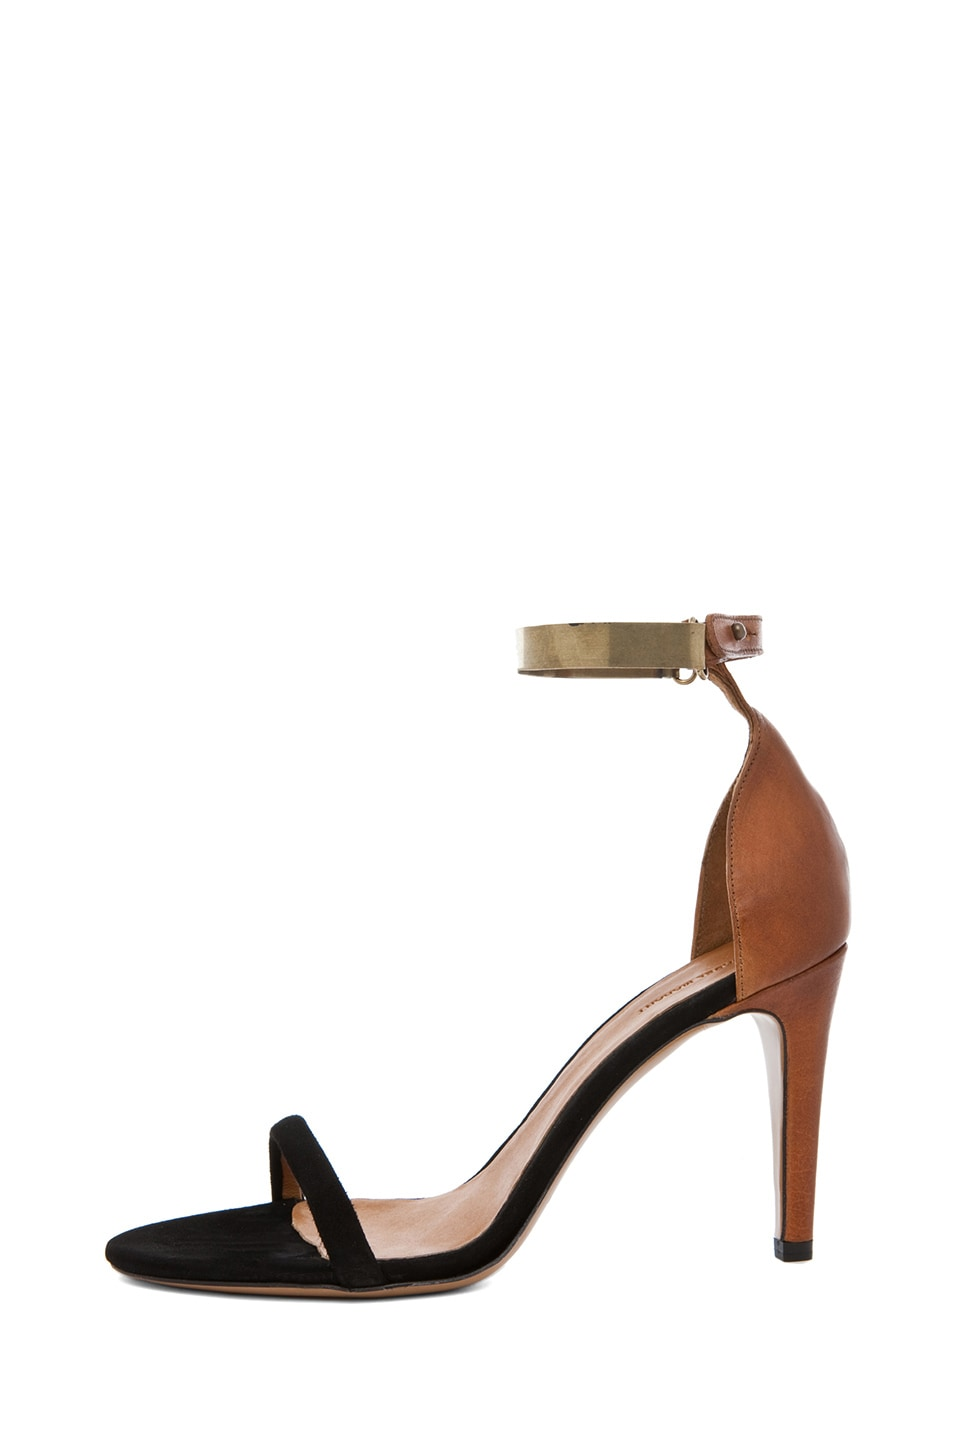 Image 1 of Isabel Marant Adele Heel in Black